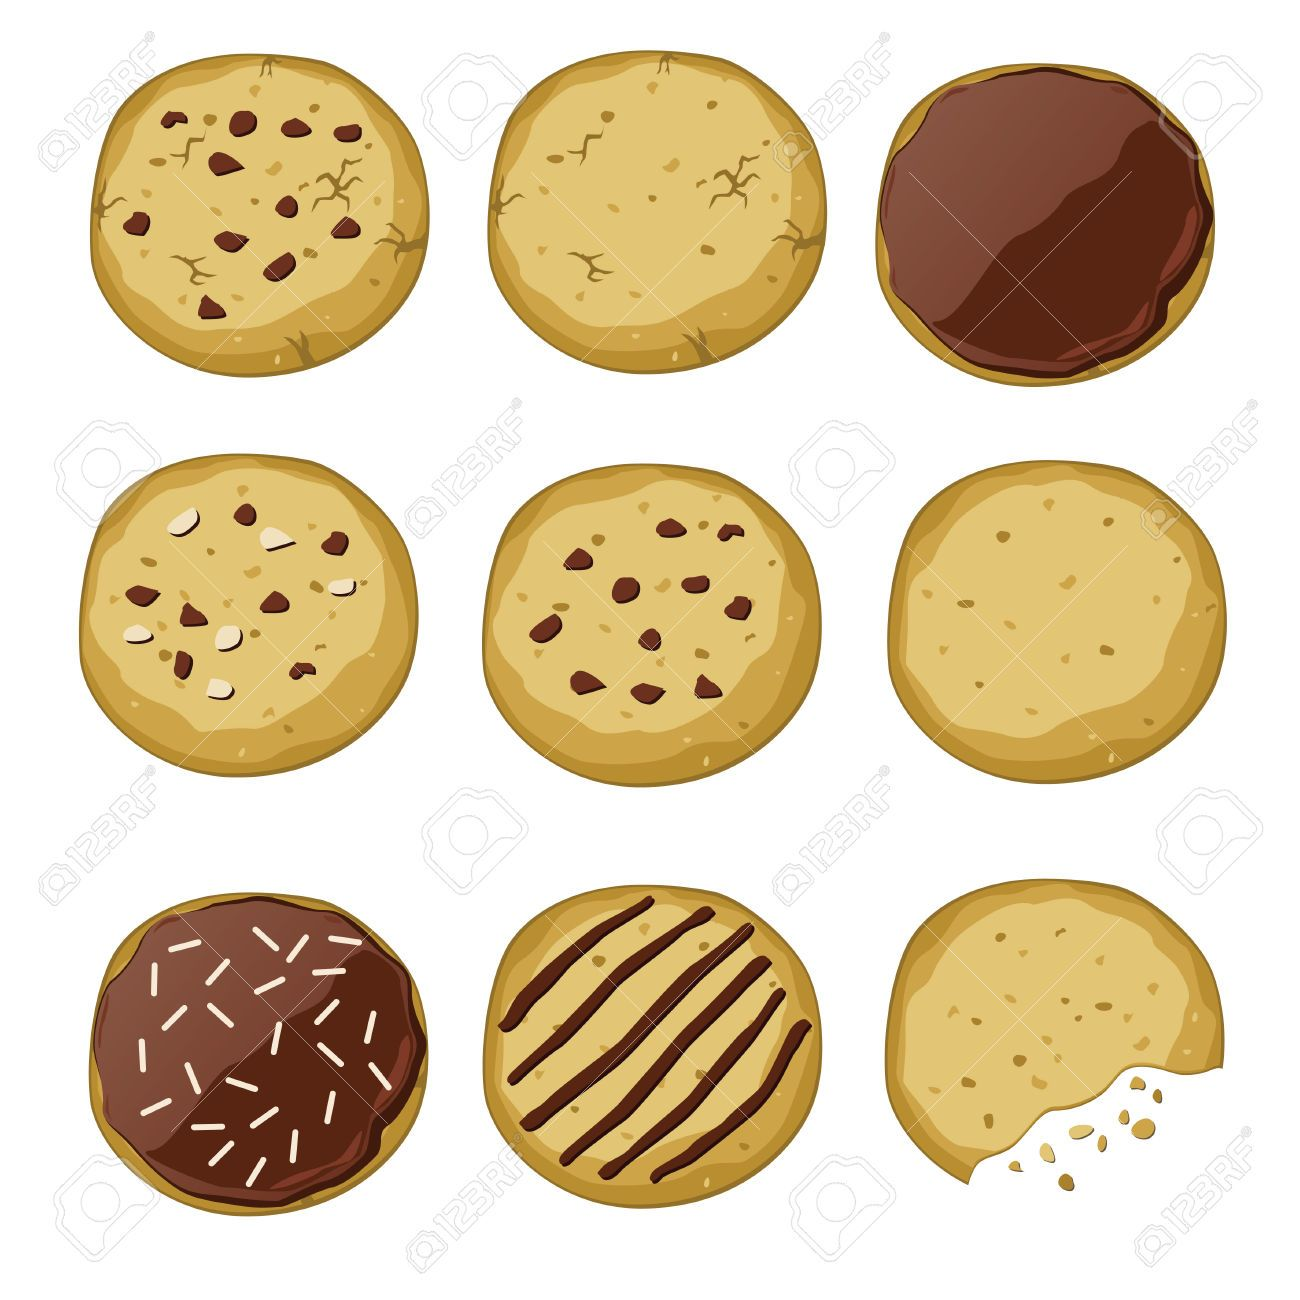 Cookies clipart vector image free download 13,035 Sugar Cookies Cliparts, Stock Vector And Royalty Free Sugar ... image free download